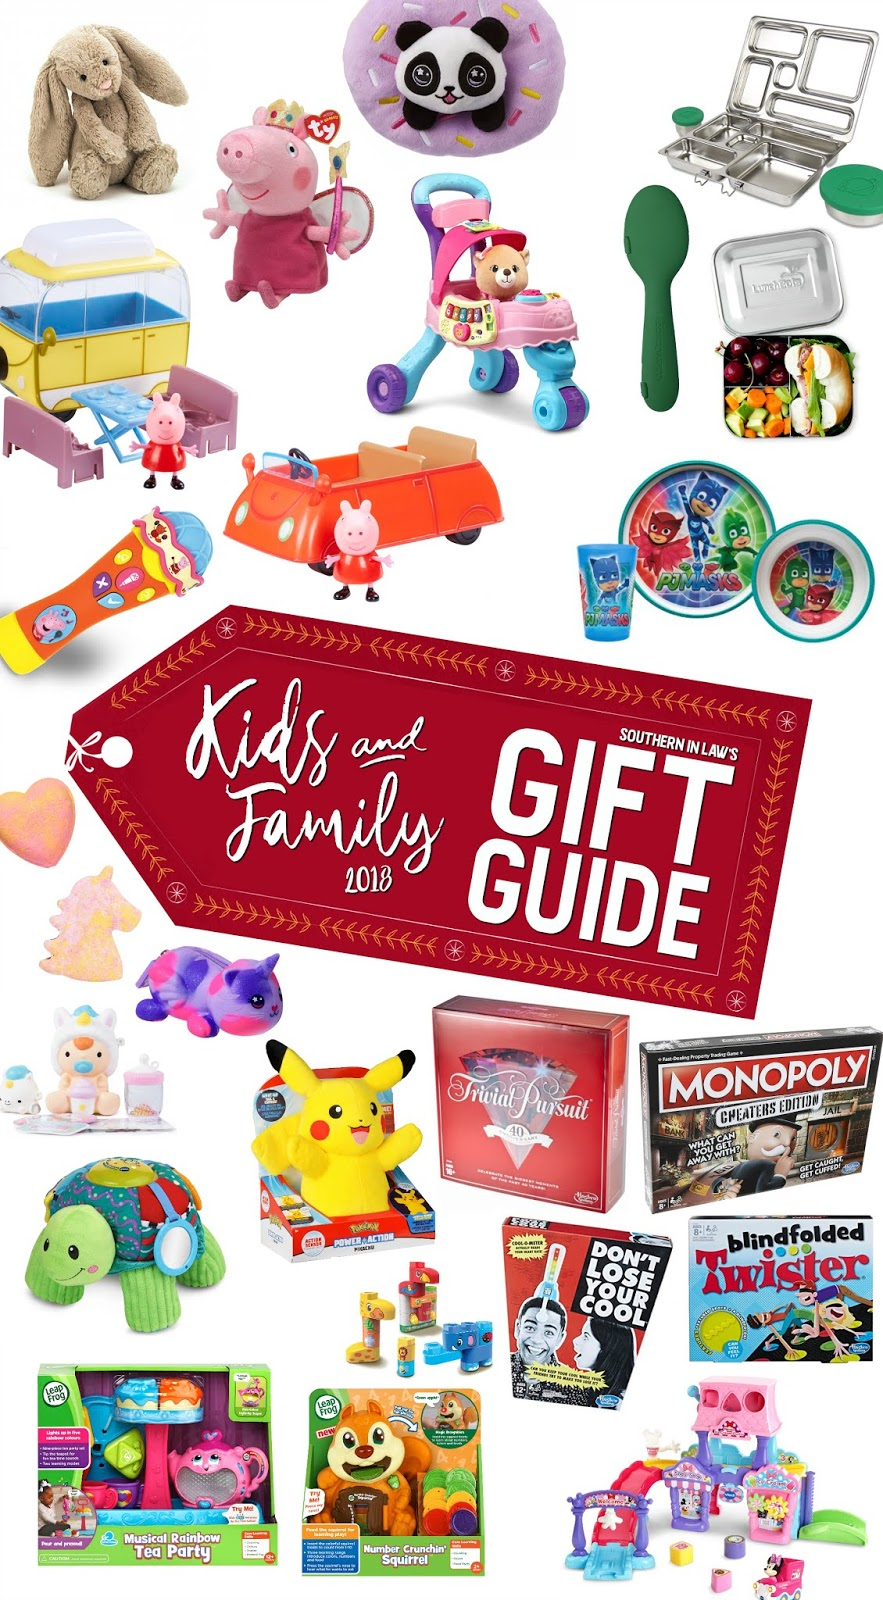 Southern In Law: The Best Christmas Gifts for Kids and Family this Year!